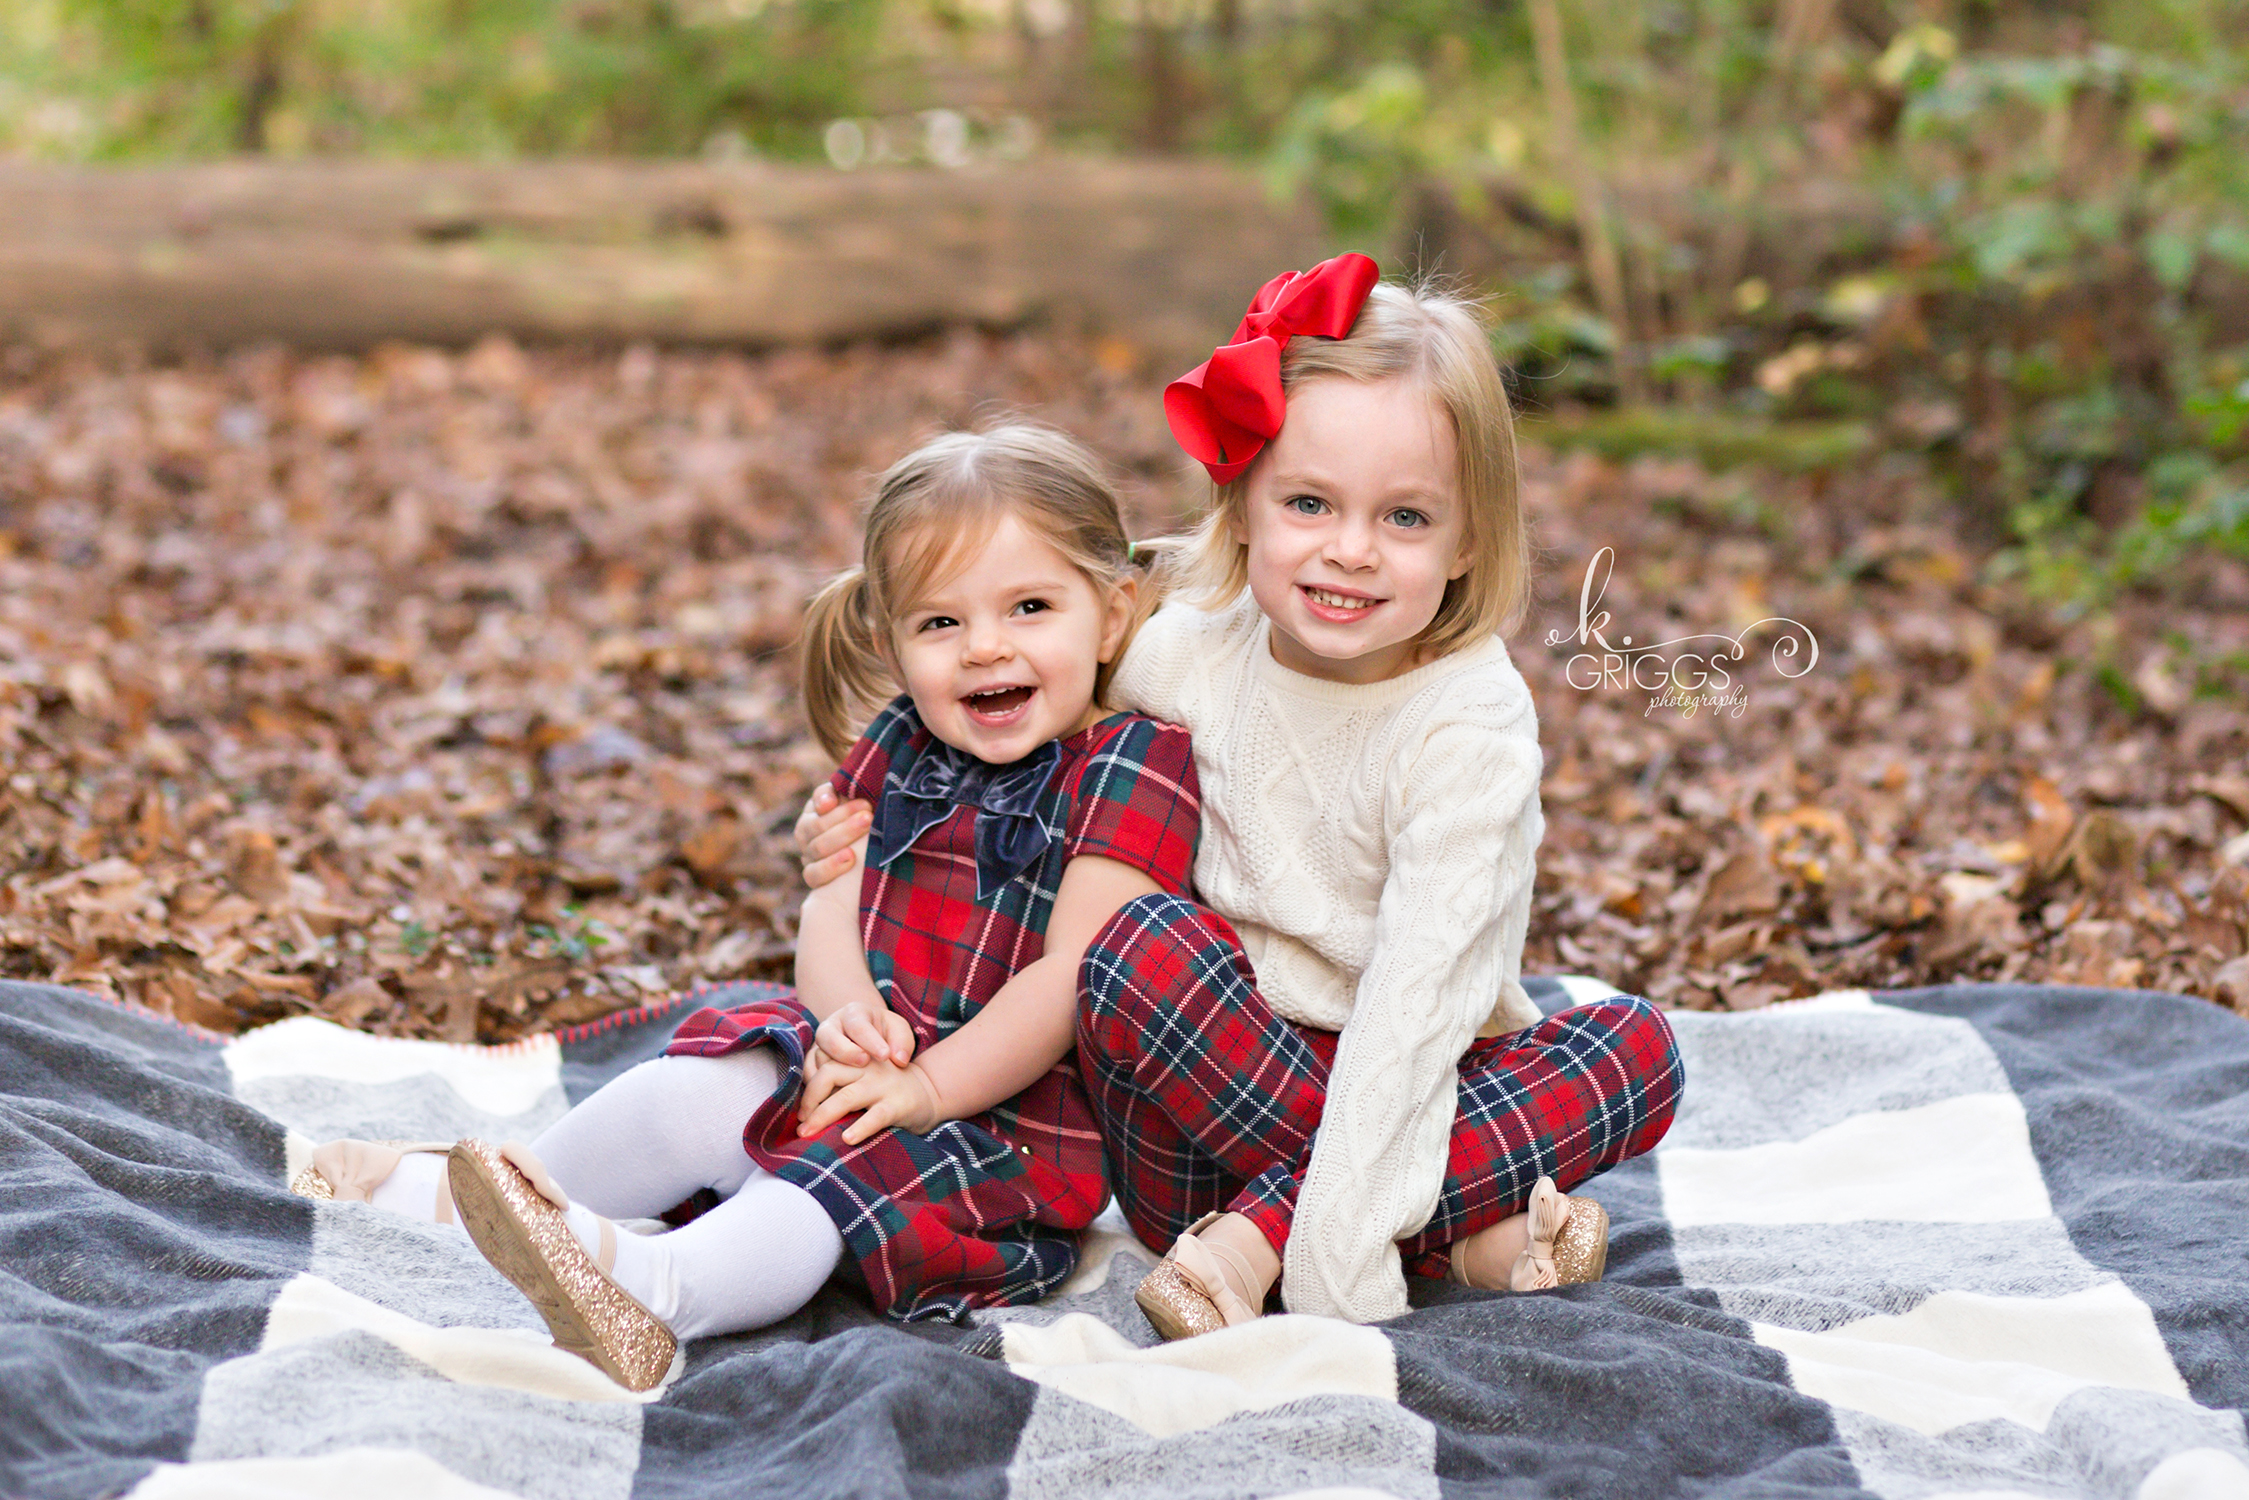 Sisters sitting on blanket smiling at camera | St. Louis Family Photography